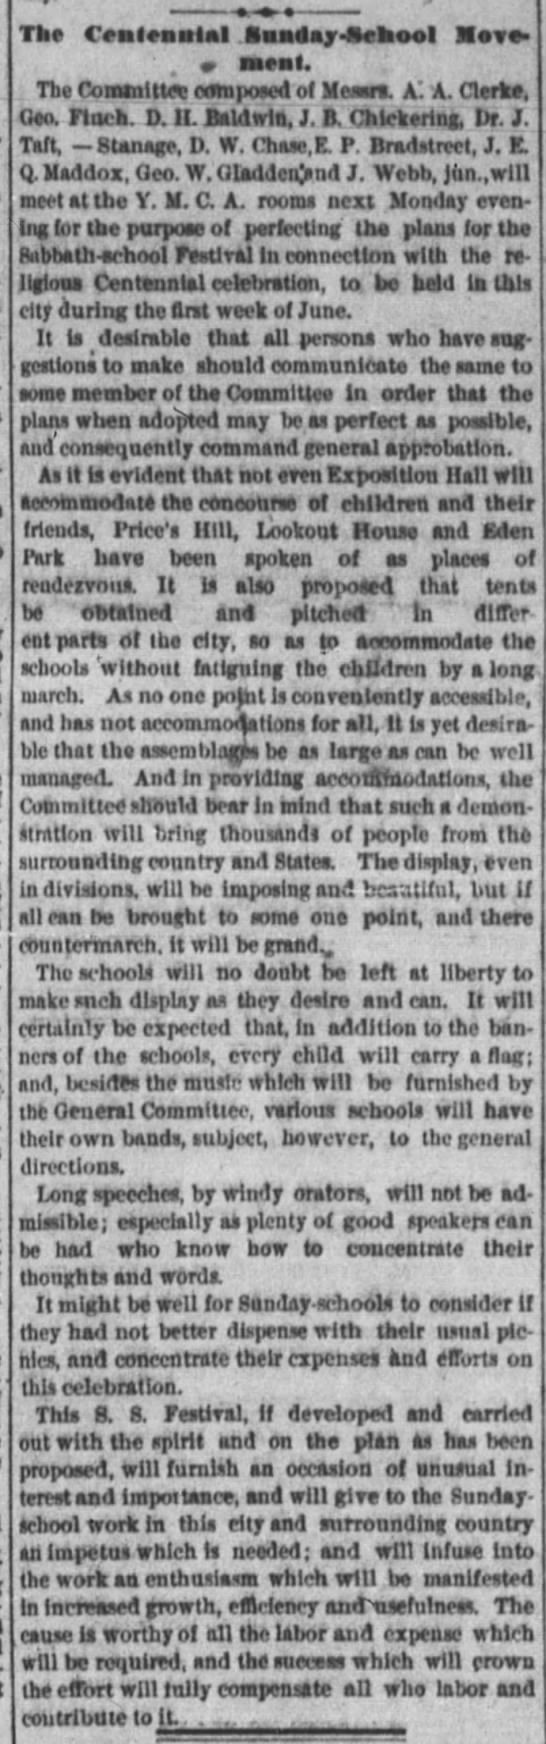 Cinti Enquirer - 15Apr1876 - The Centennial ftunday - ftcaool tlose - Ths...